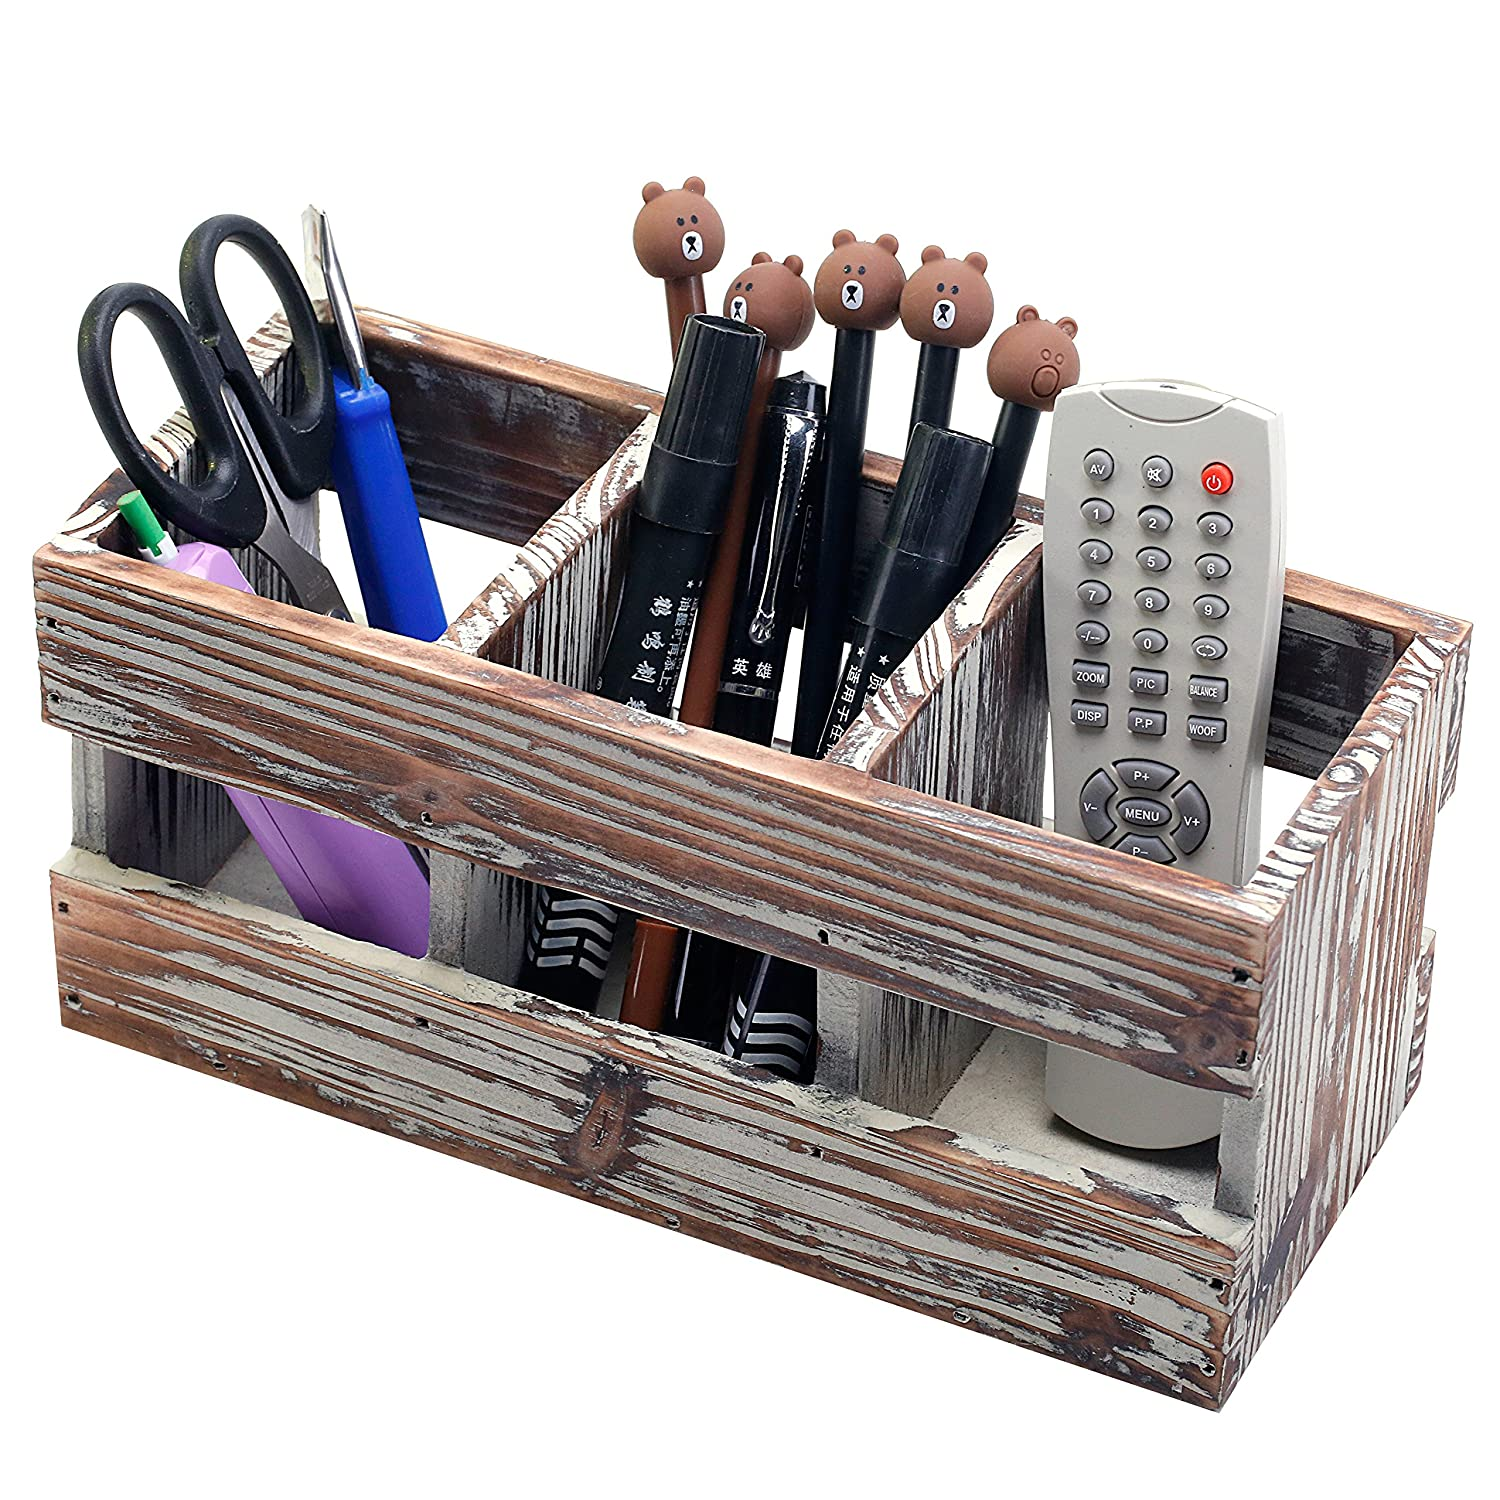 Compartment Torched Desktop Supplies Organizer Image 2